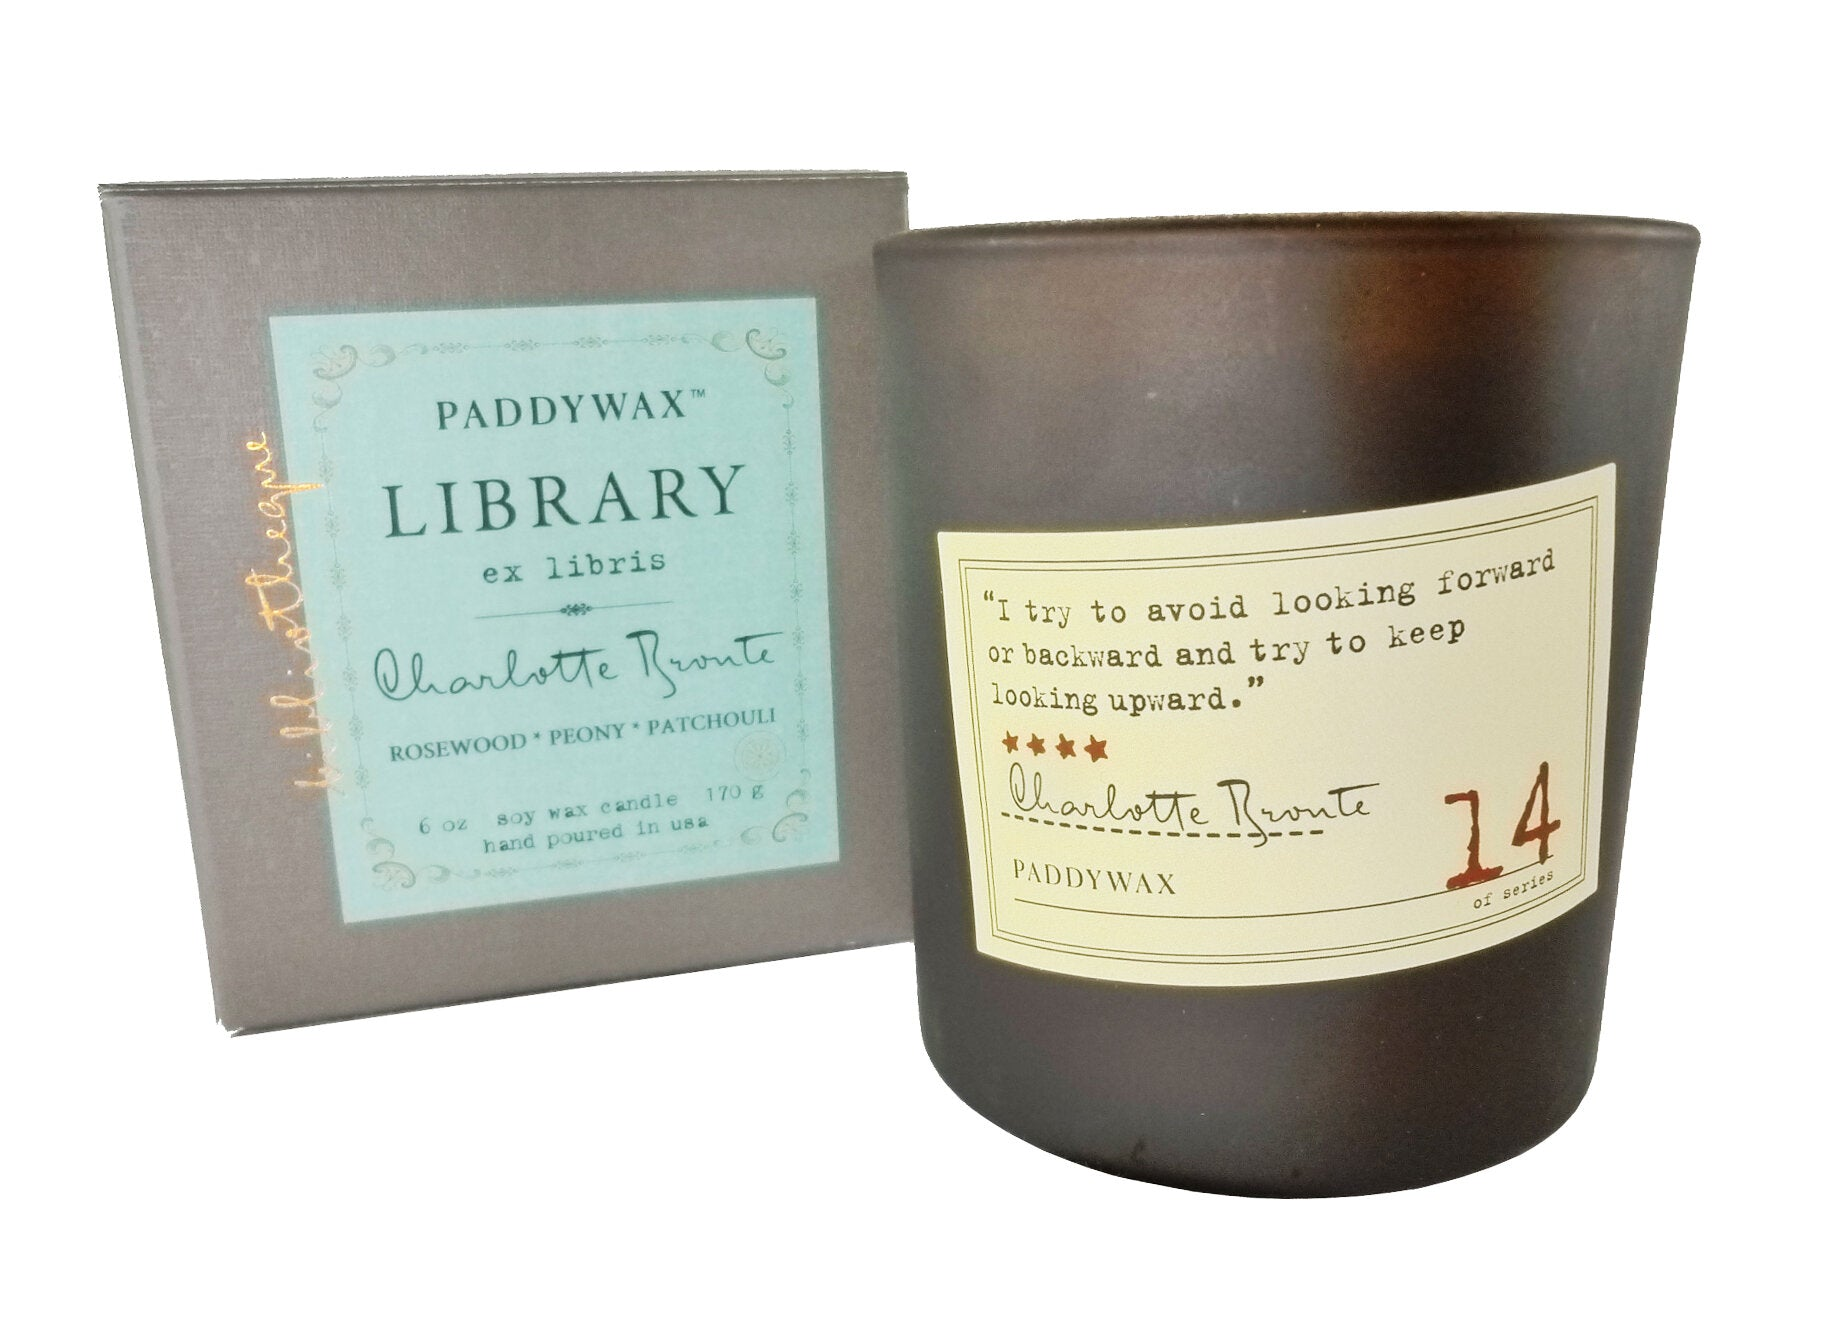 Paddywax Library Series 6oz Candle - Charlotte Bronte HOME & GIFTS - Home Decor - Candles + Diffusers Paddywax Teskeys